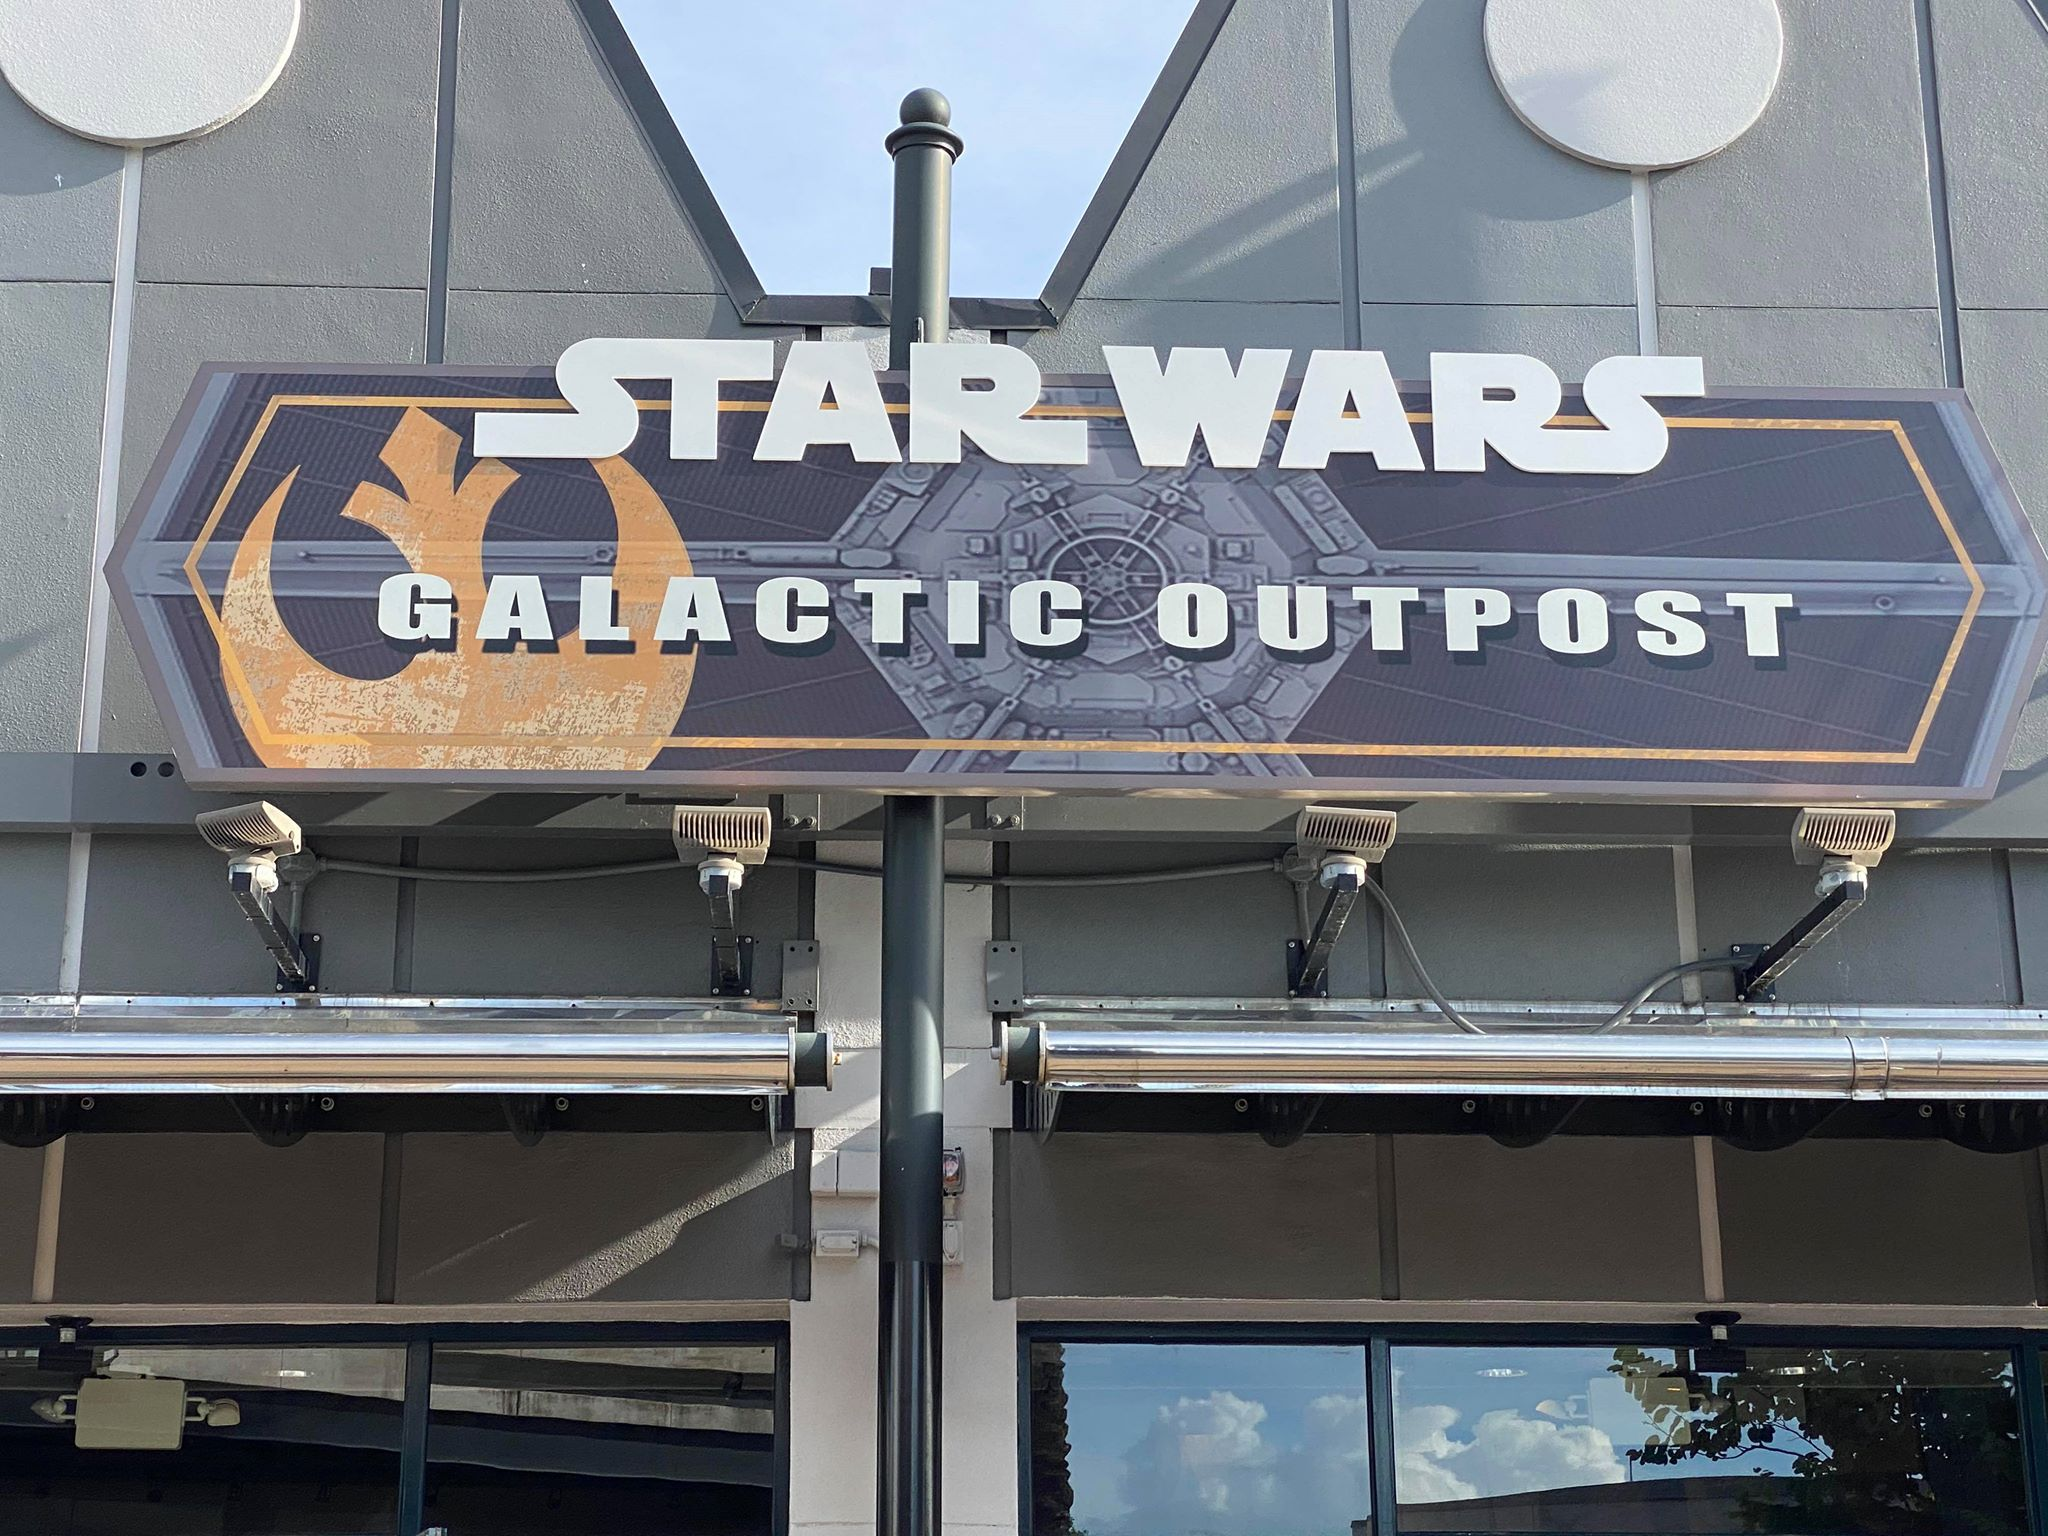 Galactic Outpost